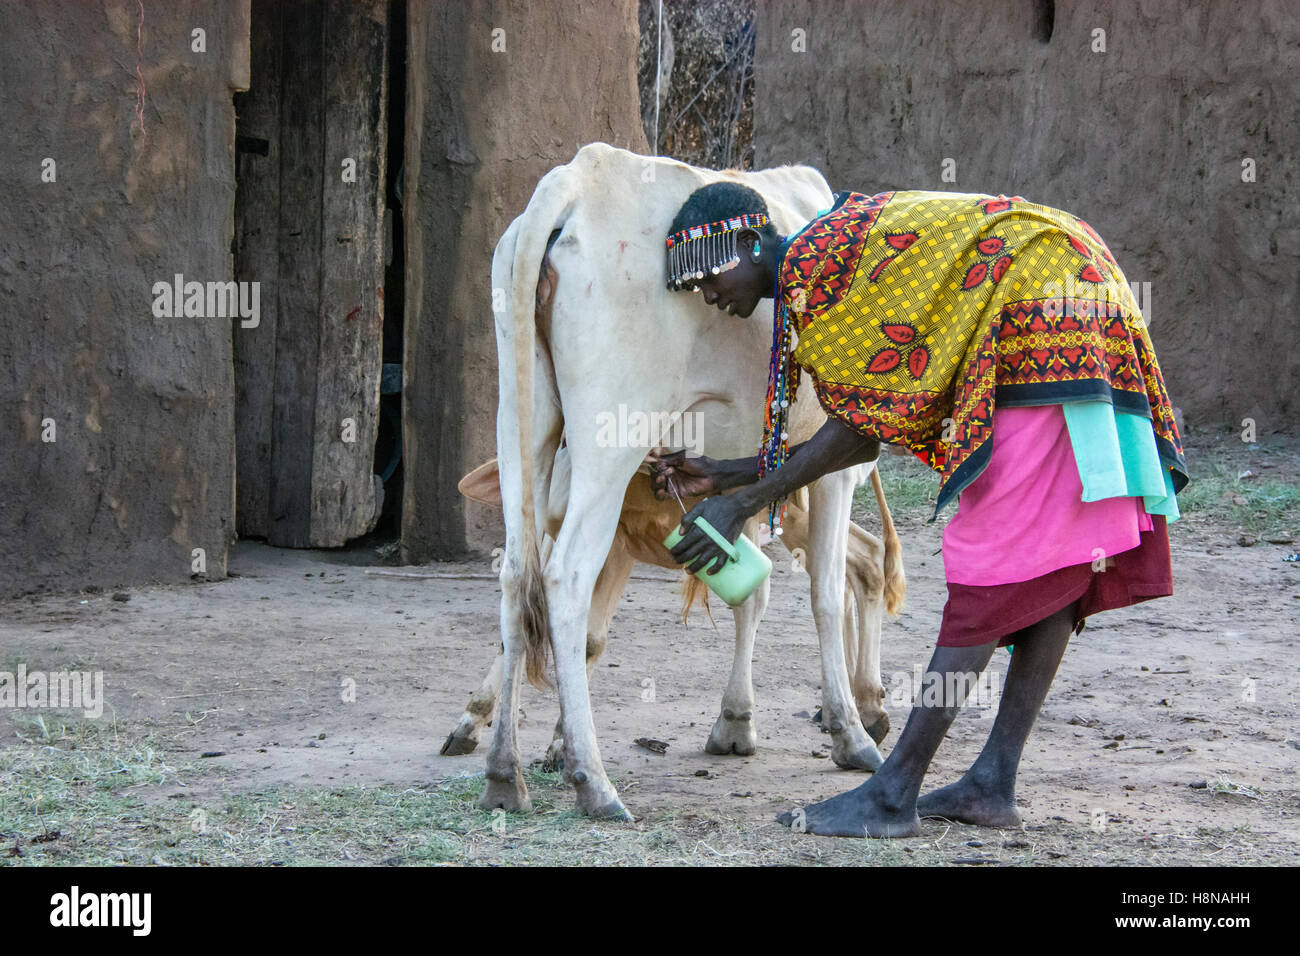 maasai-woman-milking-a-cow-wearing-tradi